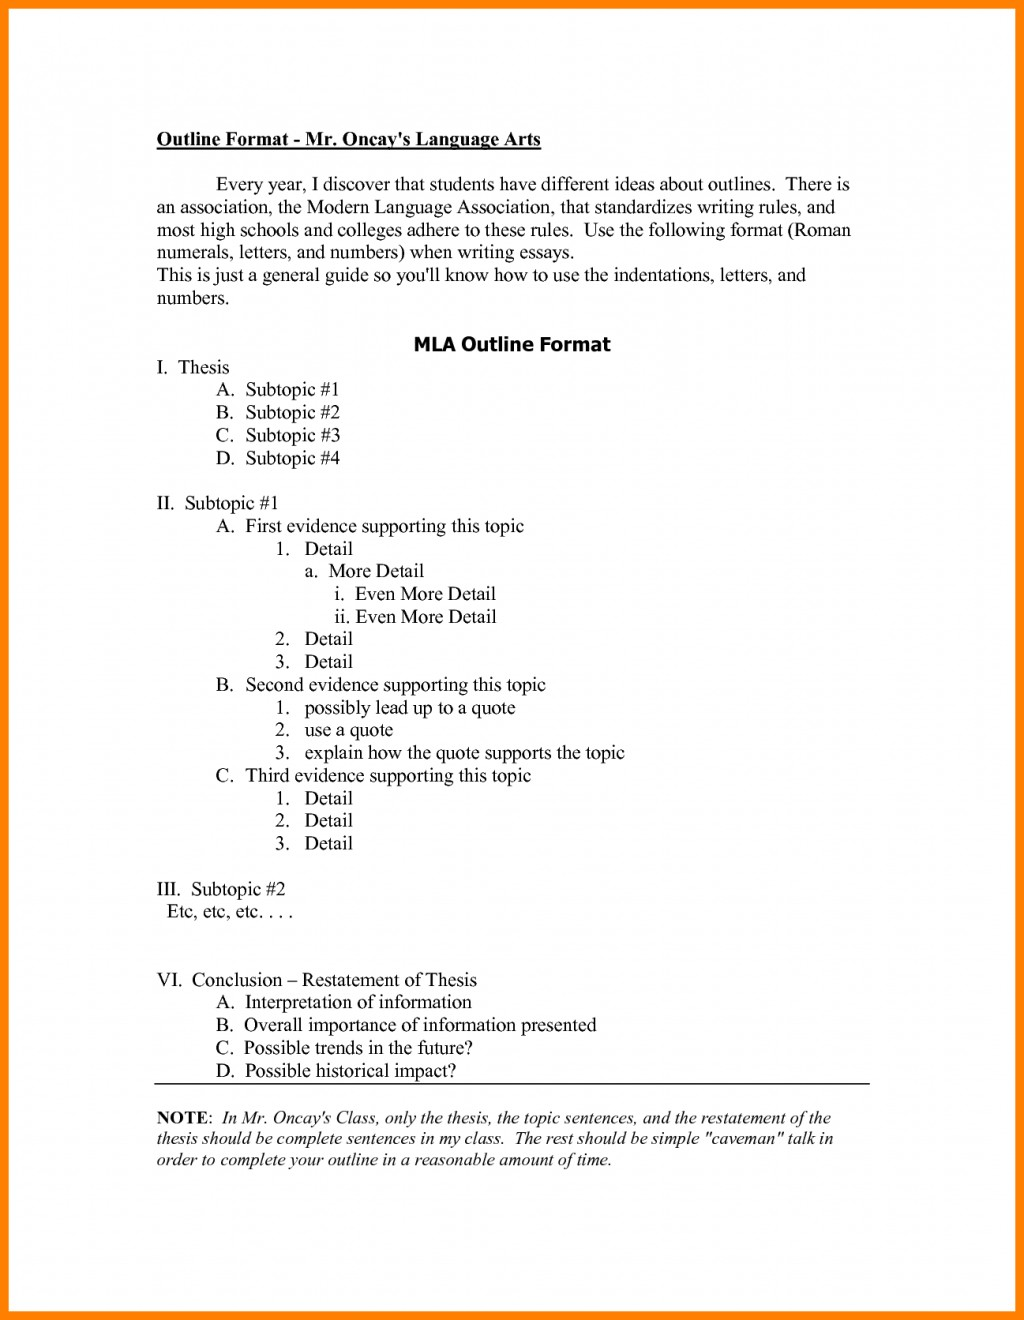 008 Research Paper Mla Format Outline Examples 148 Singular Papers Checklist Template Large